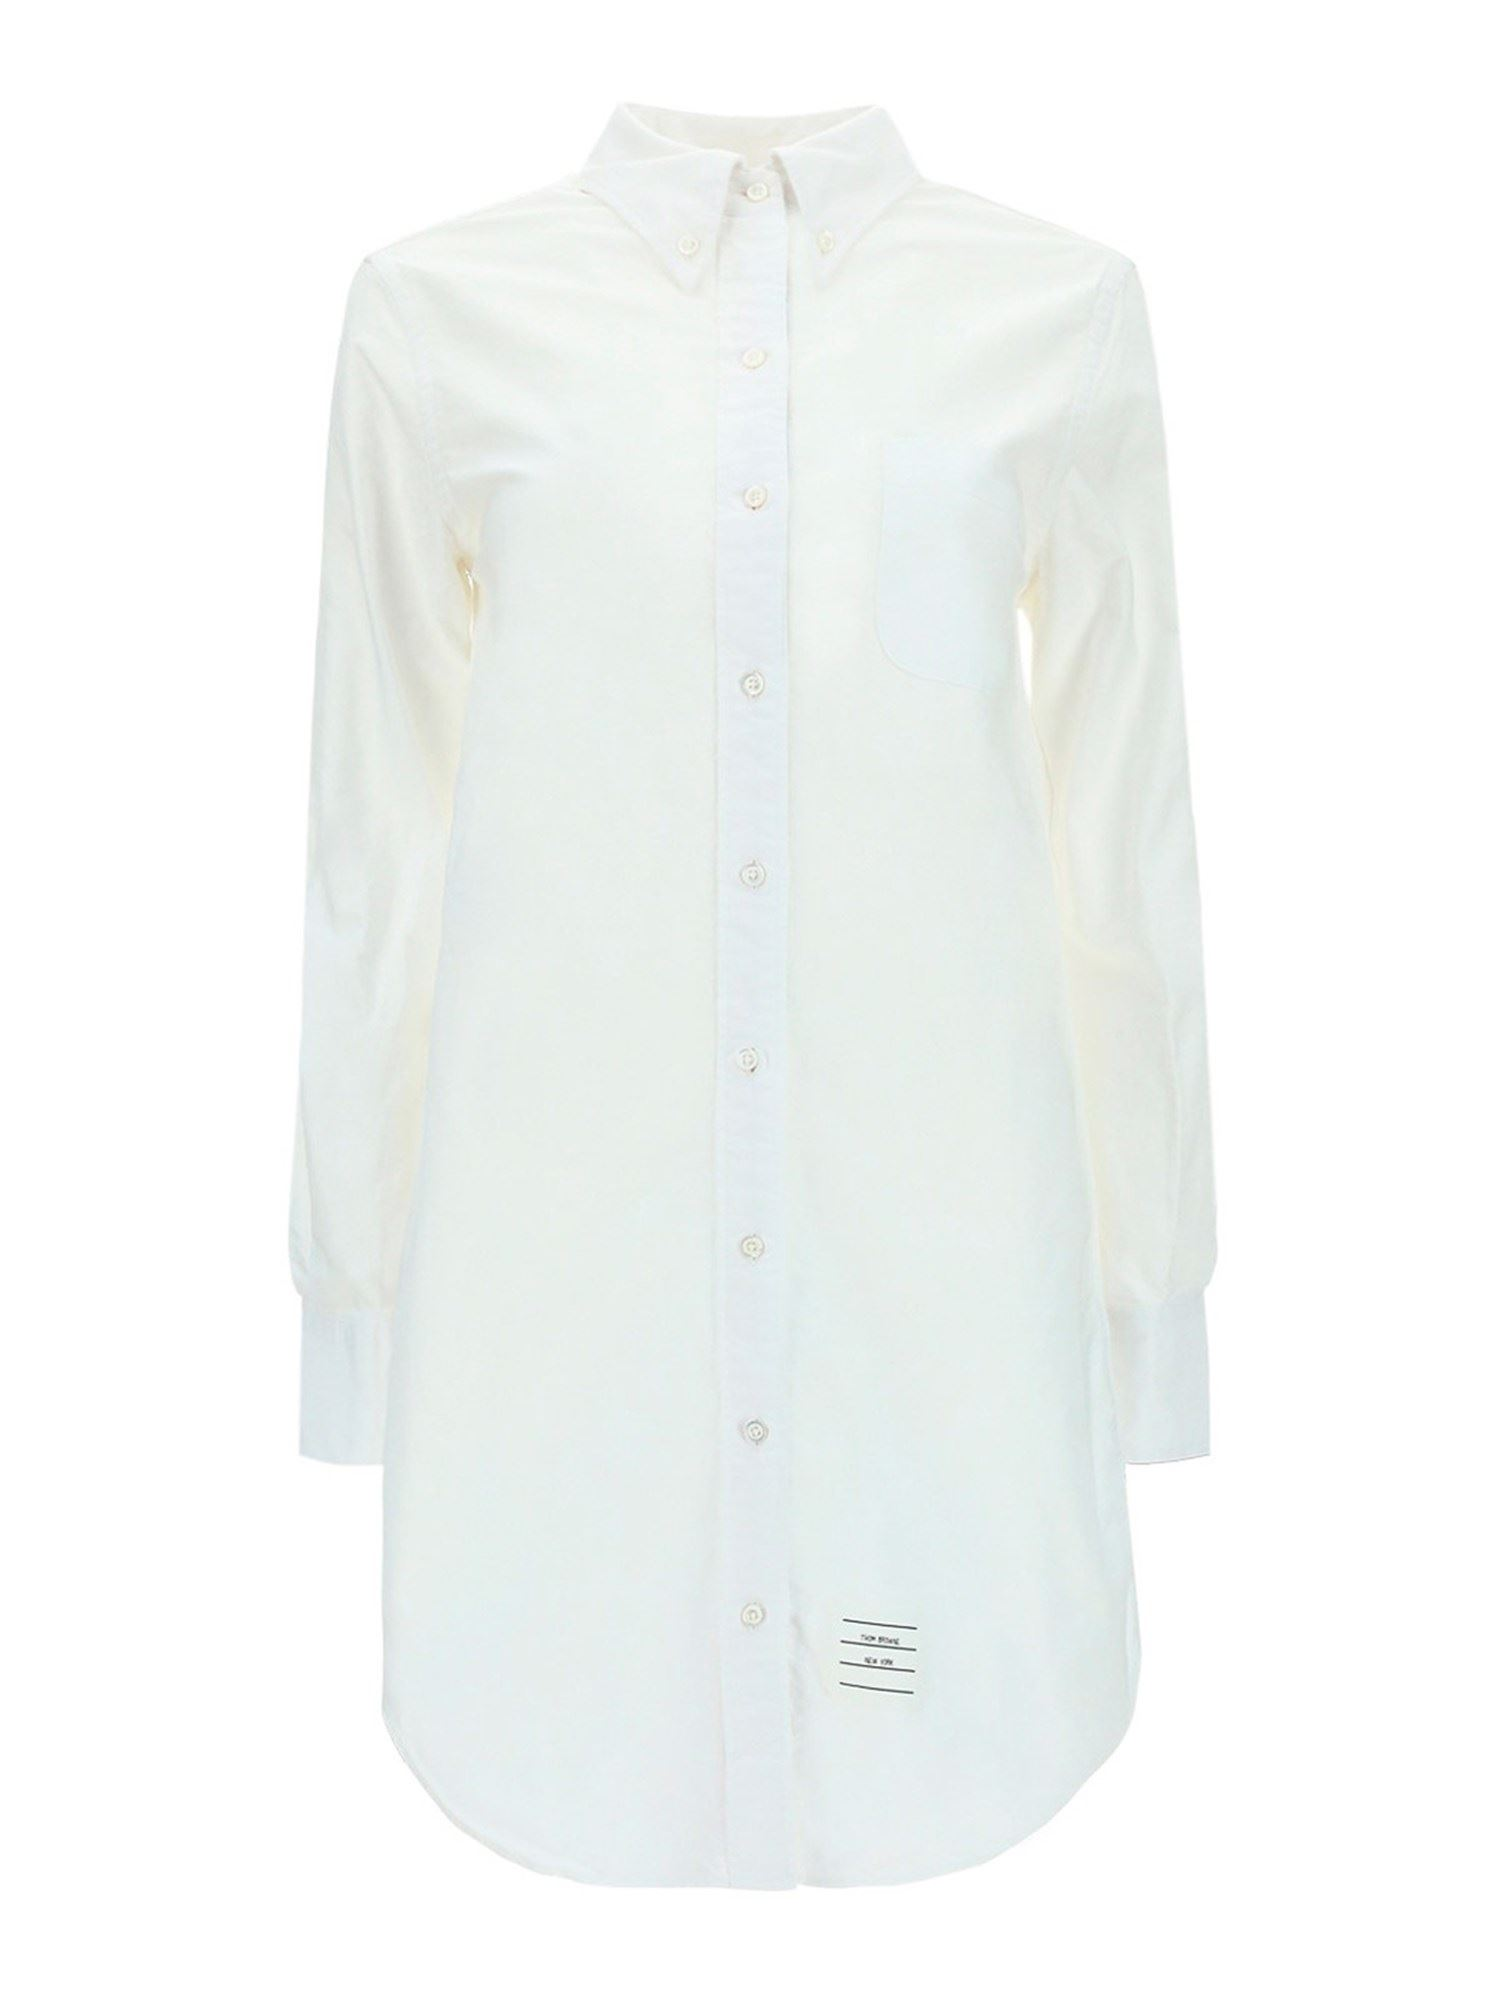 Thom Browne Cottons COTTON SHIRT DRESS IN WHITE